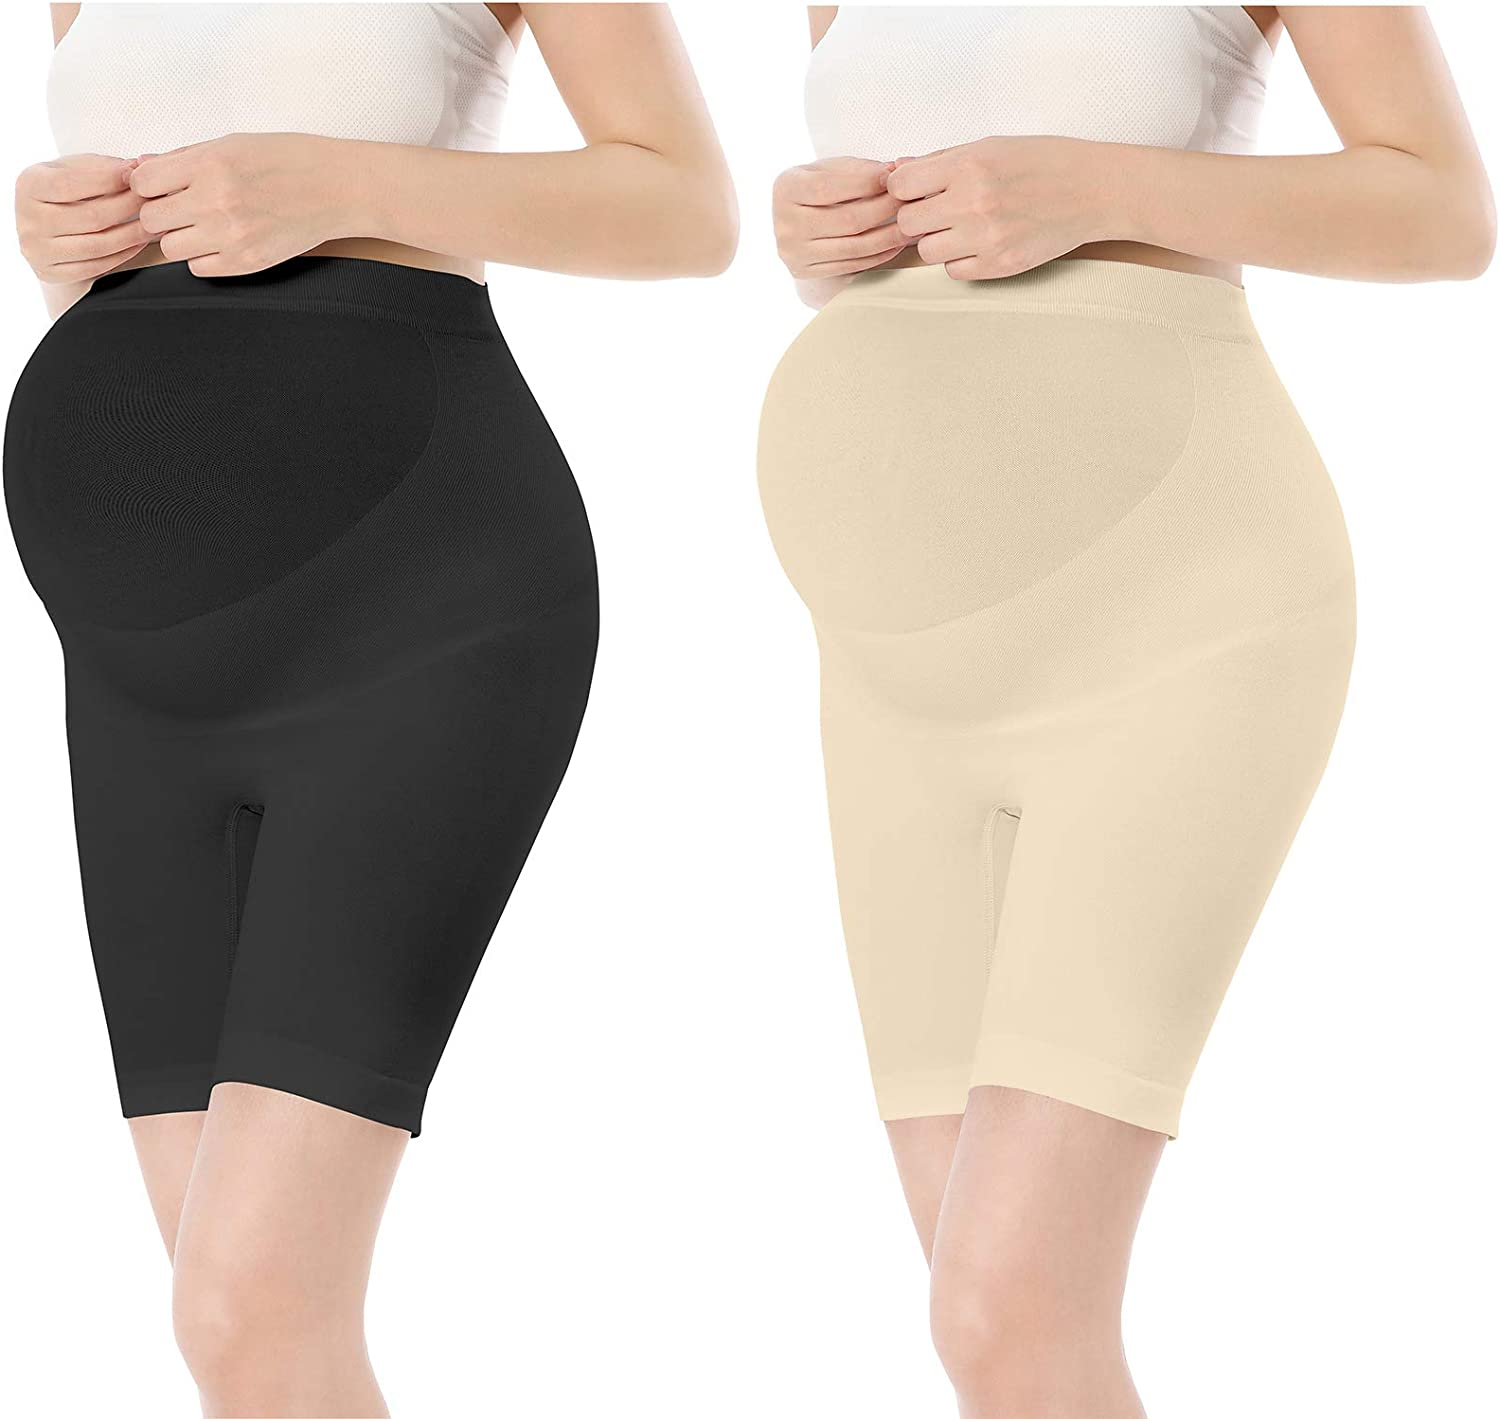 TOUCH LOOM Maternity Shapewear Pregnancy High Waist Over Belly Bump Support Mid-Thigh Pants Shorts for Women